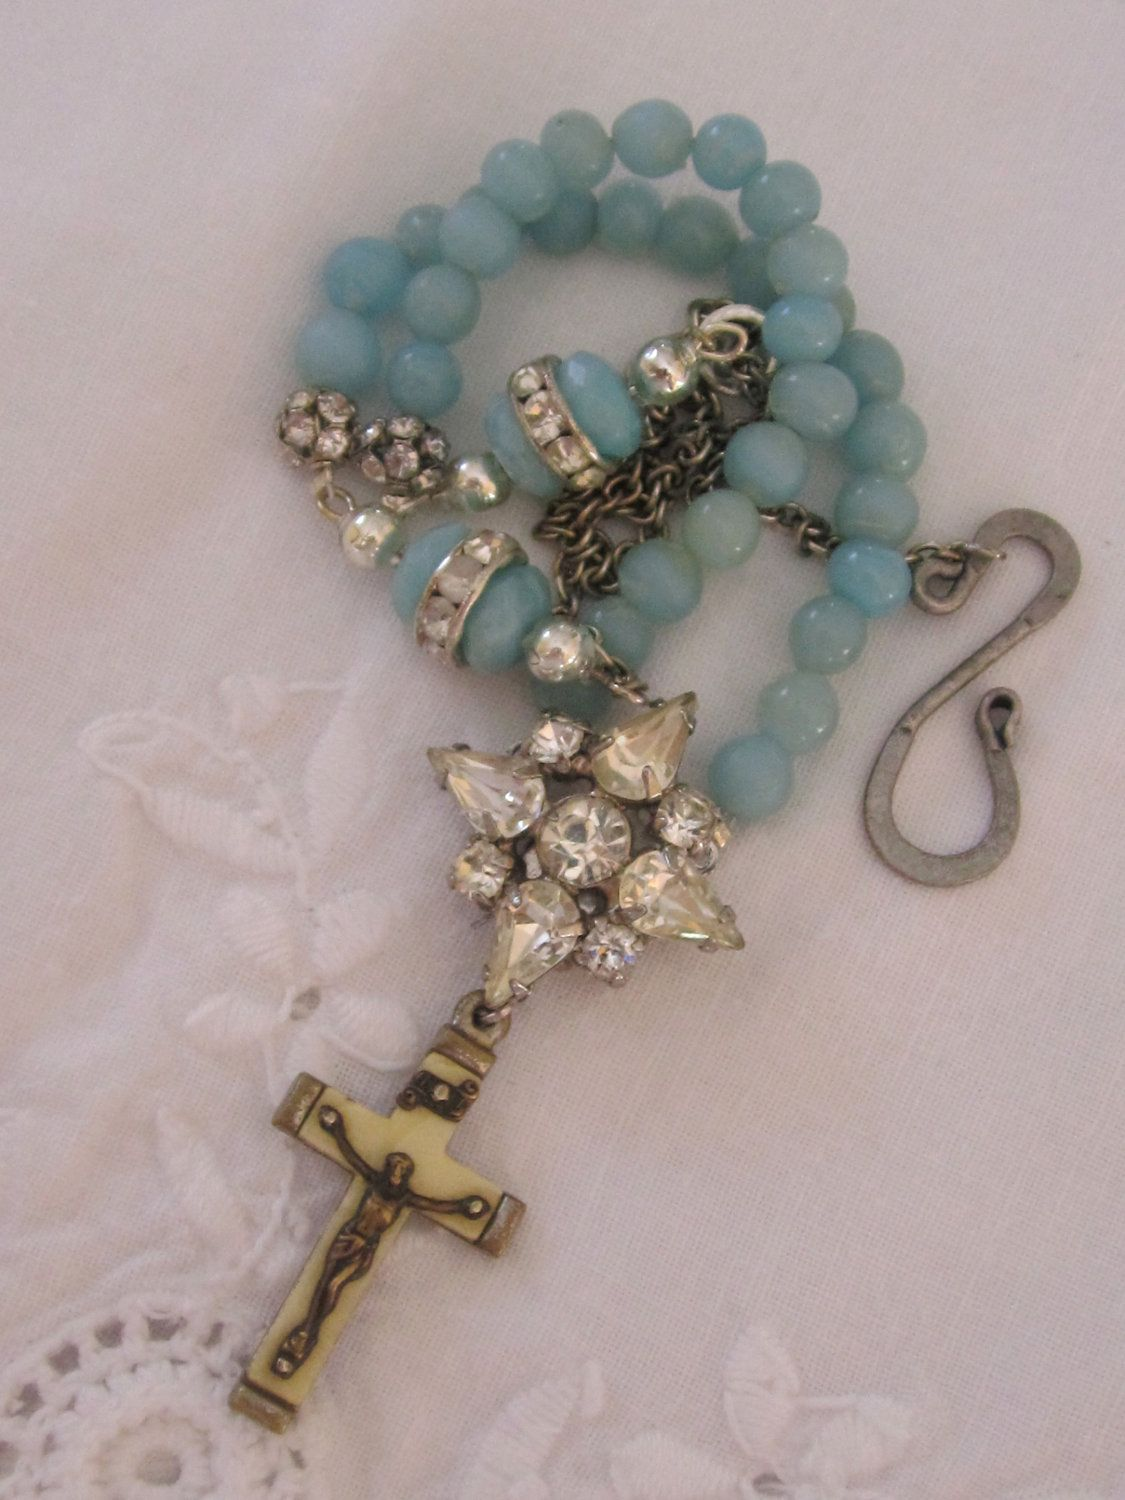 vintage repurposed assemblage jewelry necklace rosary crucifix rhinestone amazonite atelier paris. $125.00, via Etsy.